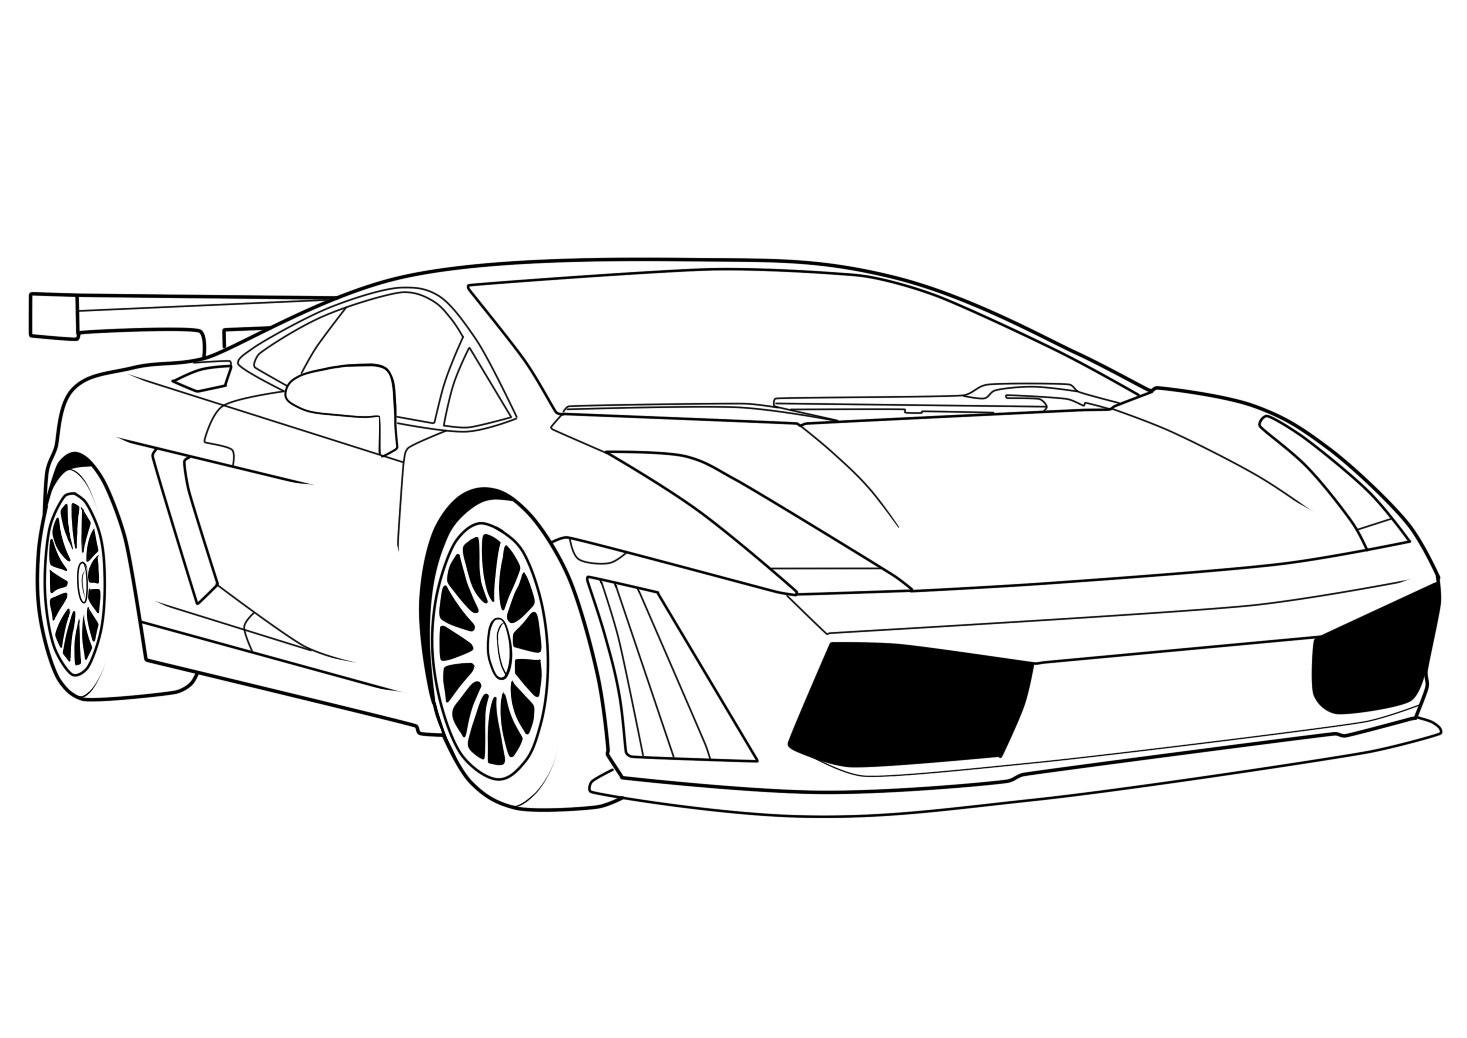 colouring in cars sports car coloring pages free and printable colouring cars in